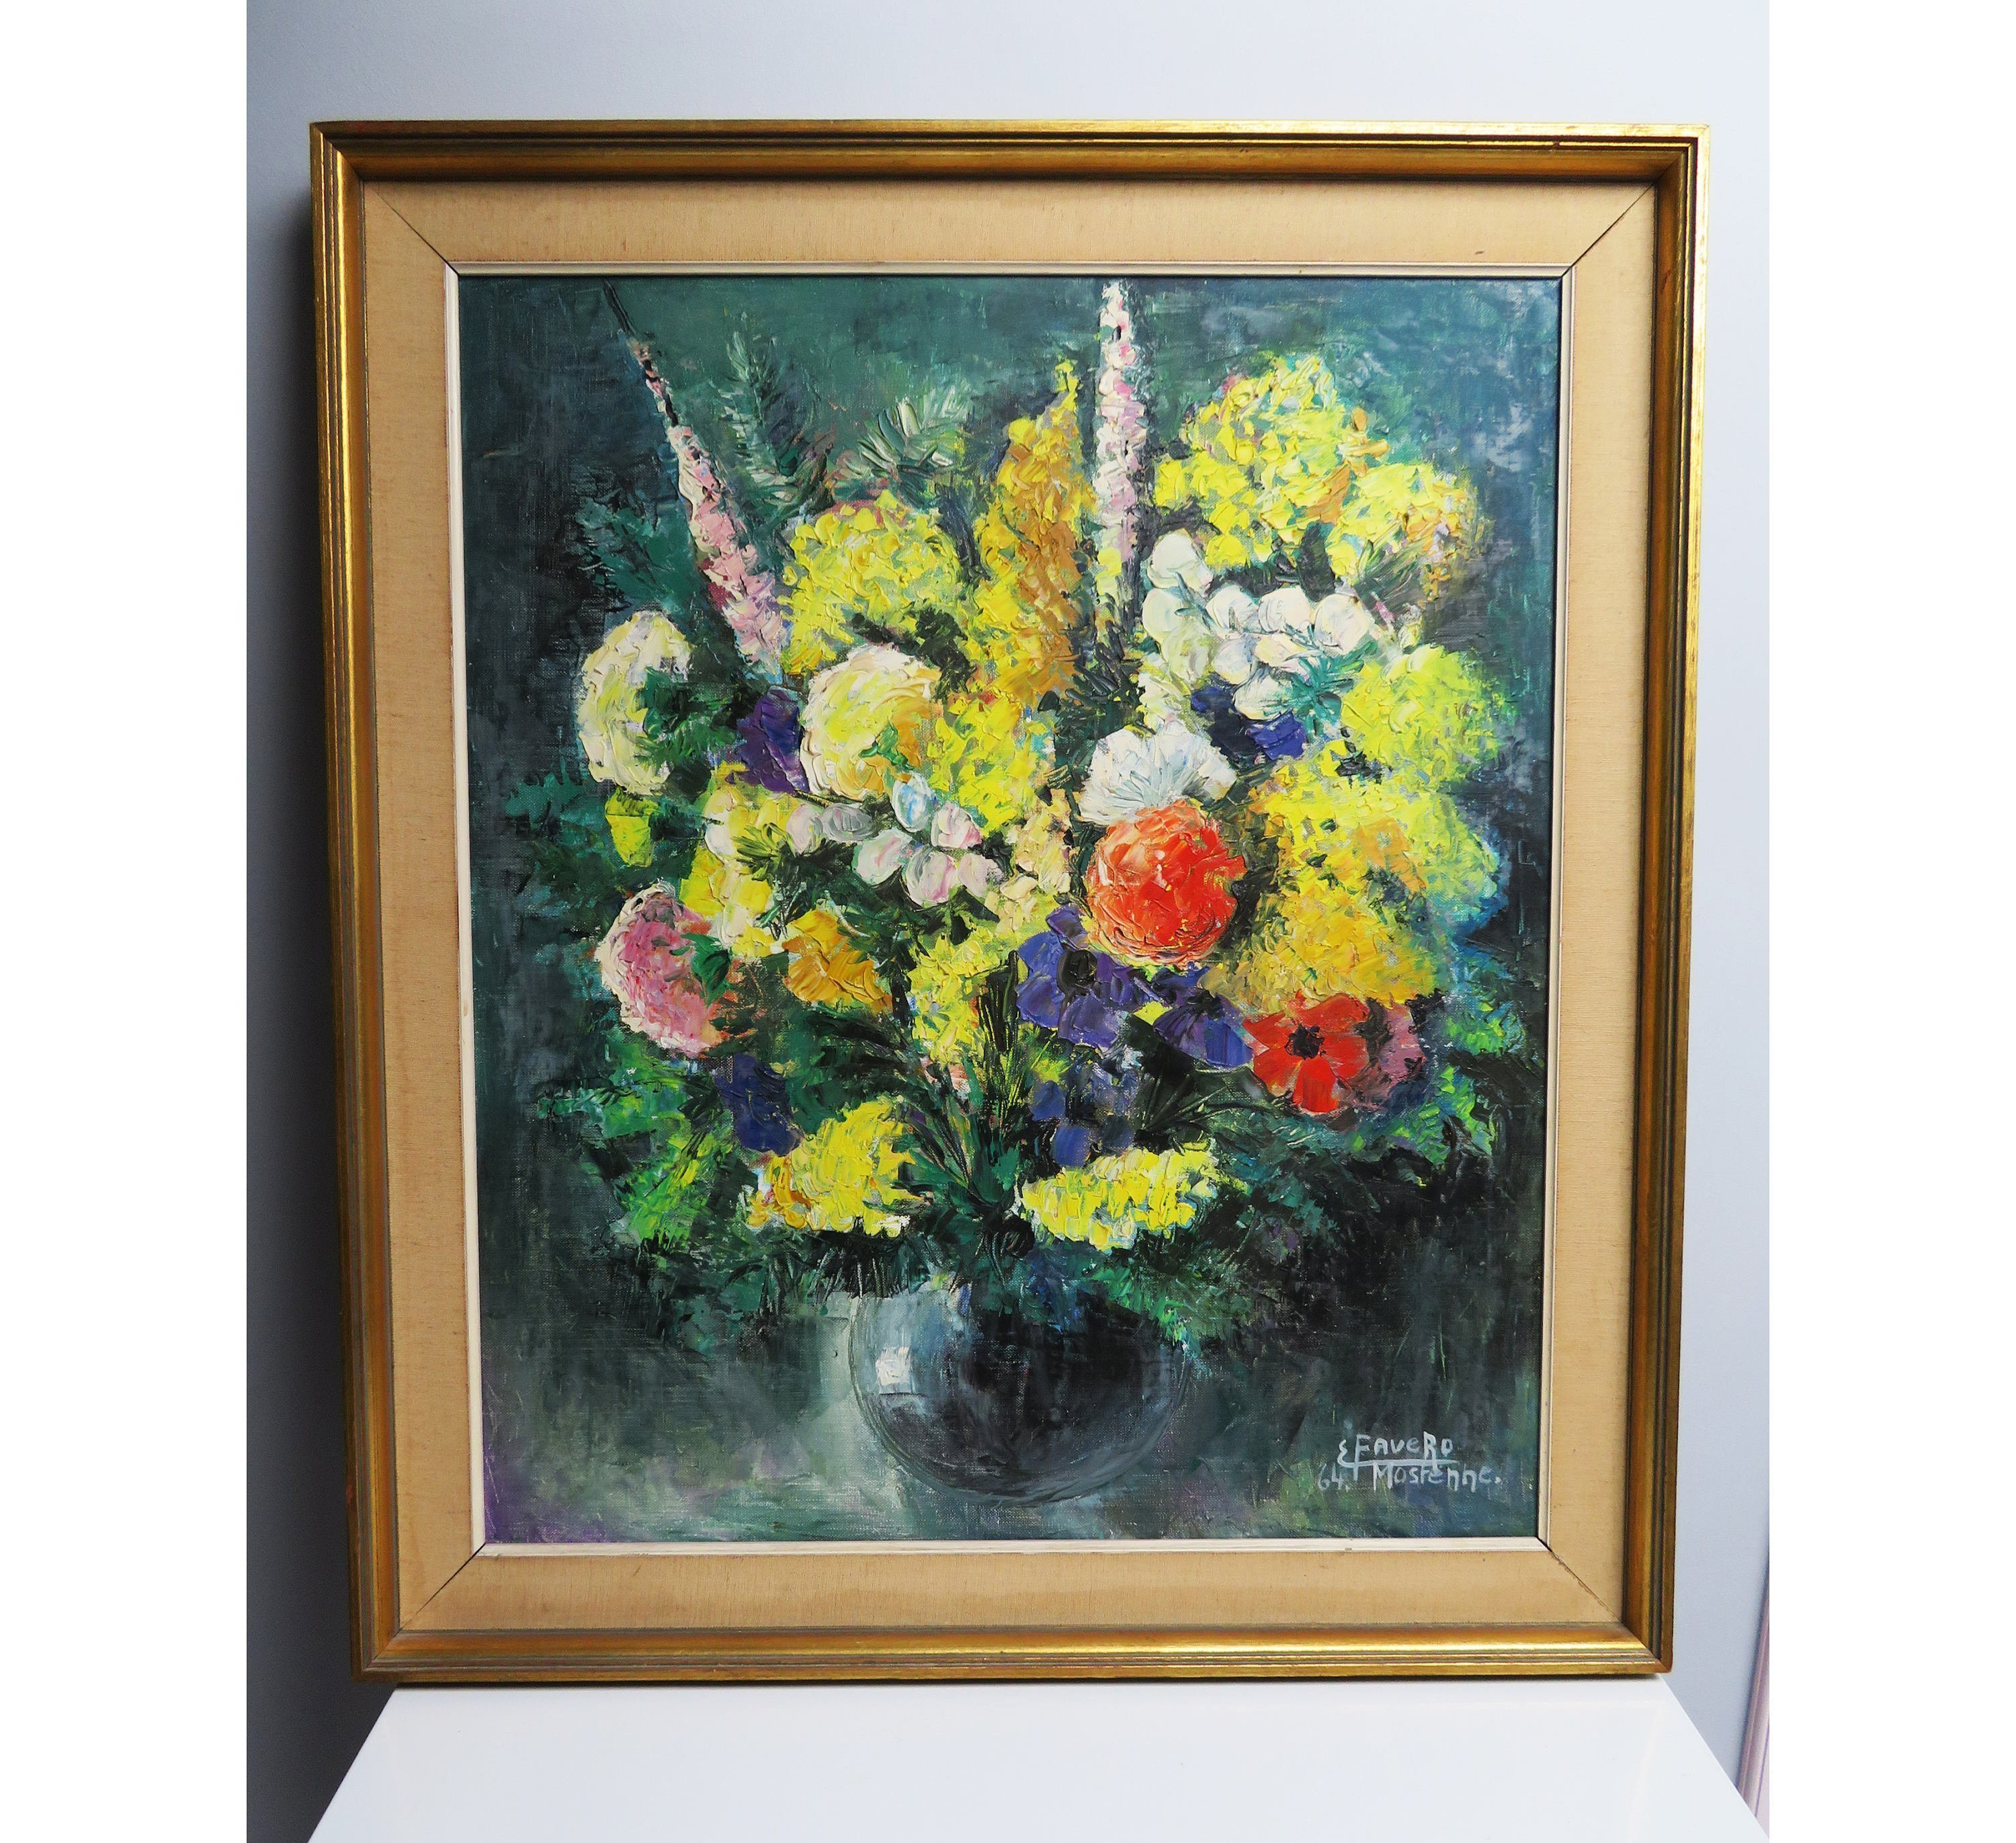 Large Frame Mat Large Vintage Acrylic Painting And Wood Frame Still Life Bouquet Of Flowers Cloth Mat Gilt Color Frame Palette Knife Painting Yellow Red